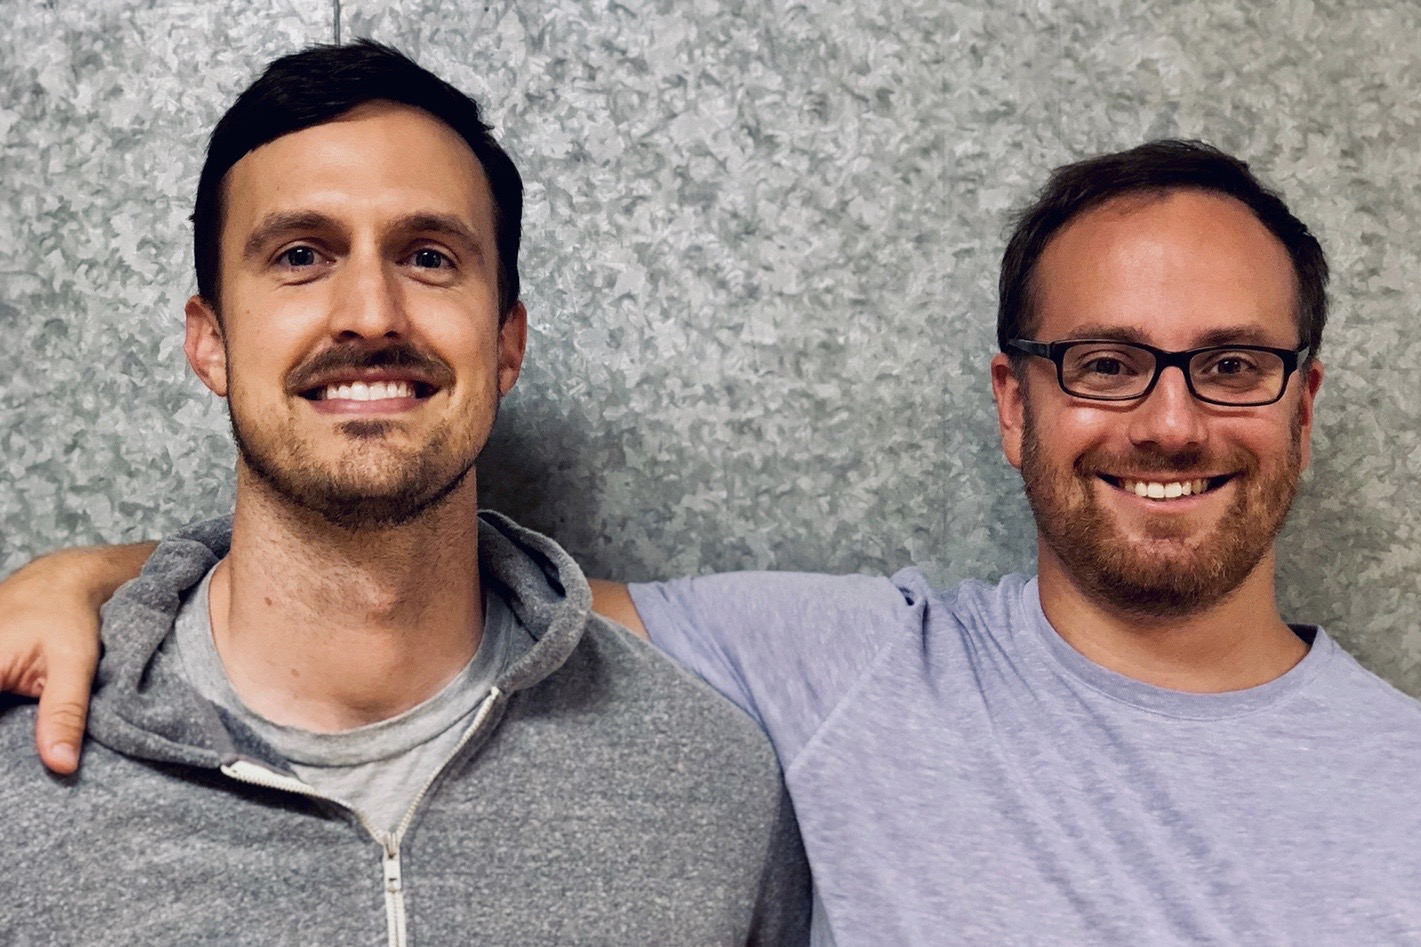 Knock co-founders